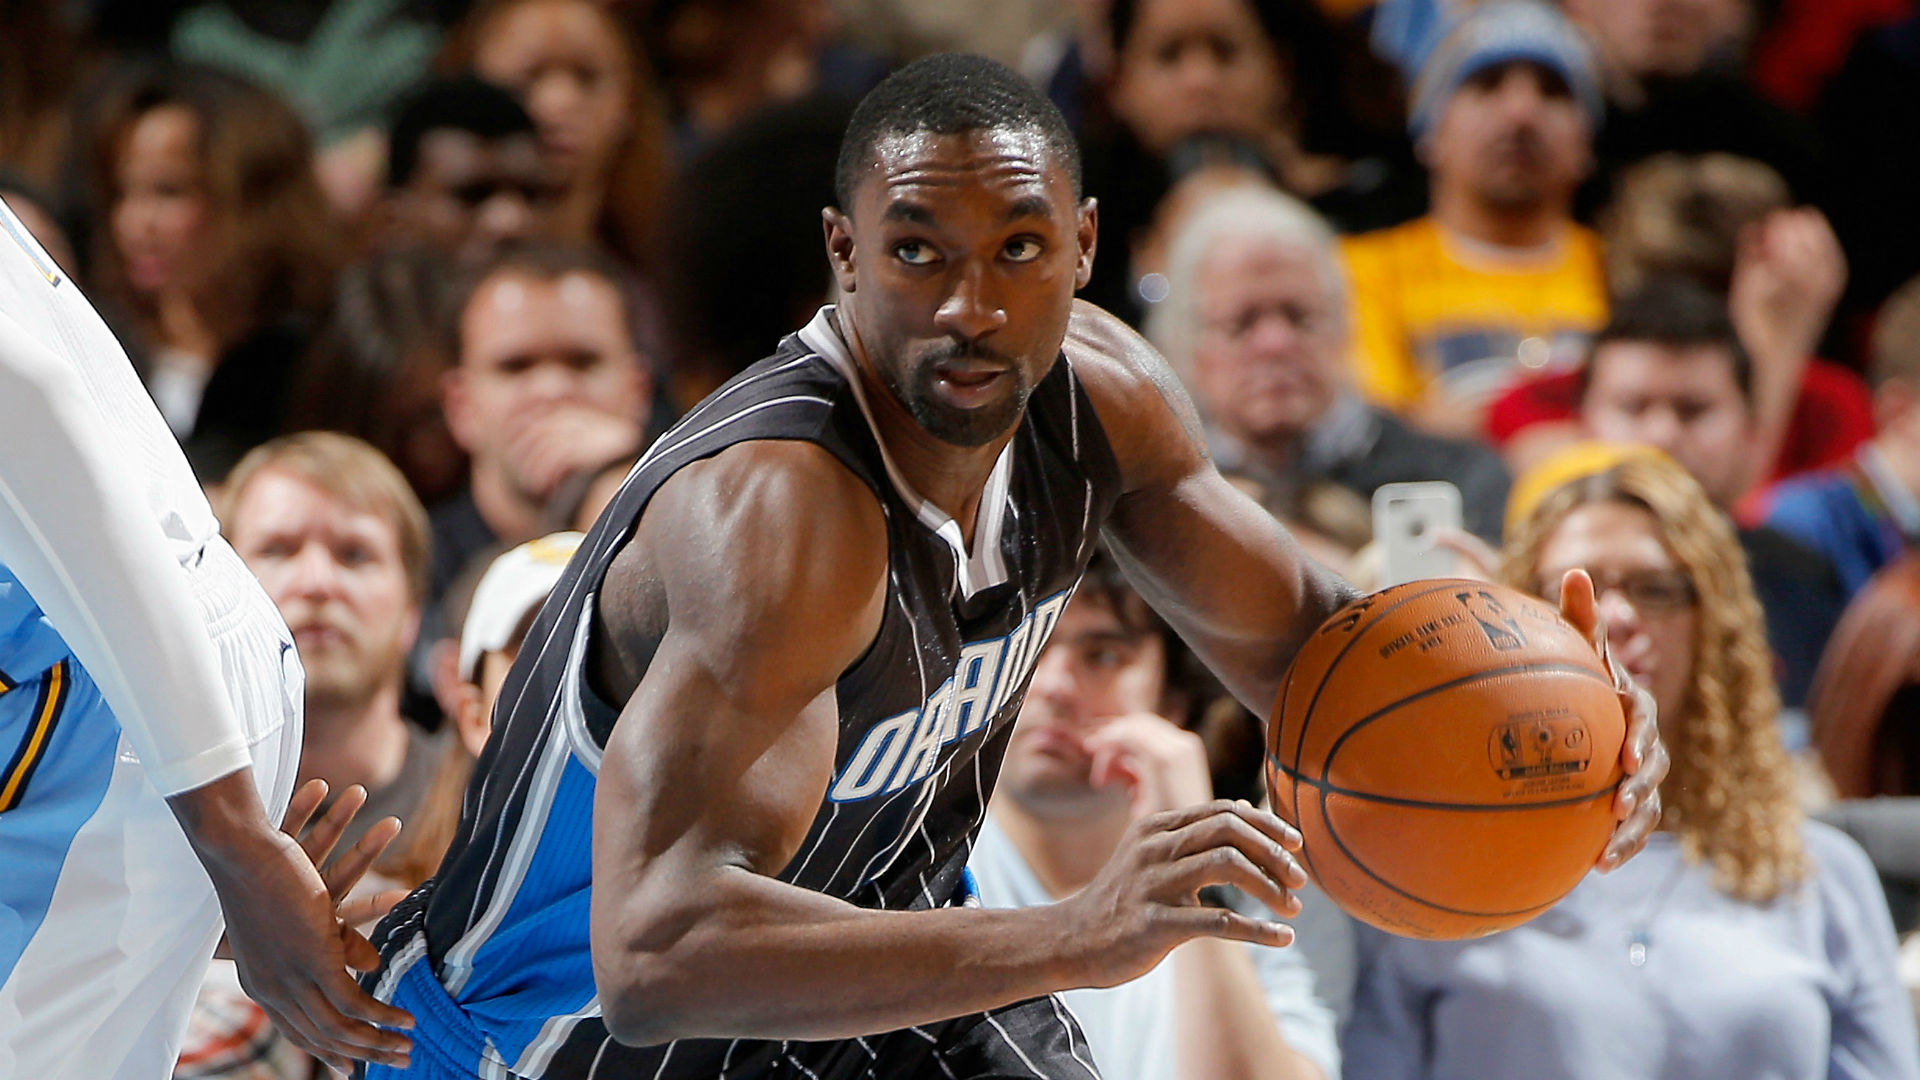 Former NBA star and Mt. Vernon native Ben Gordon arrested again